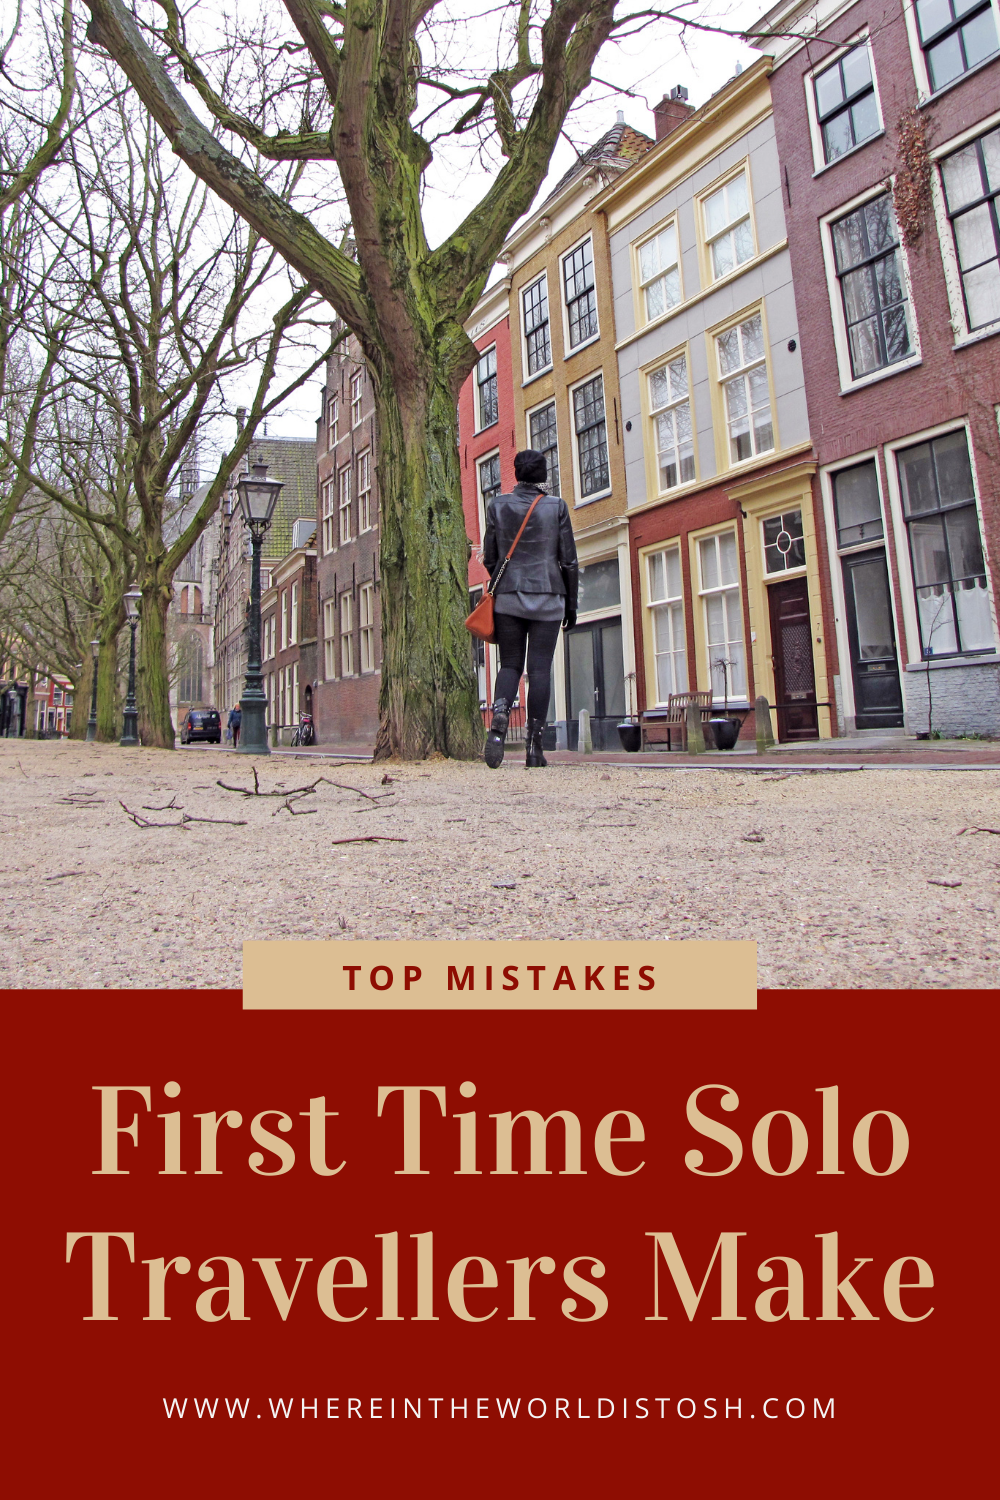 Top Mistakes First Time Solo Travellers Make